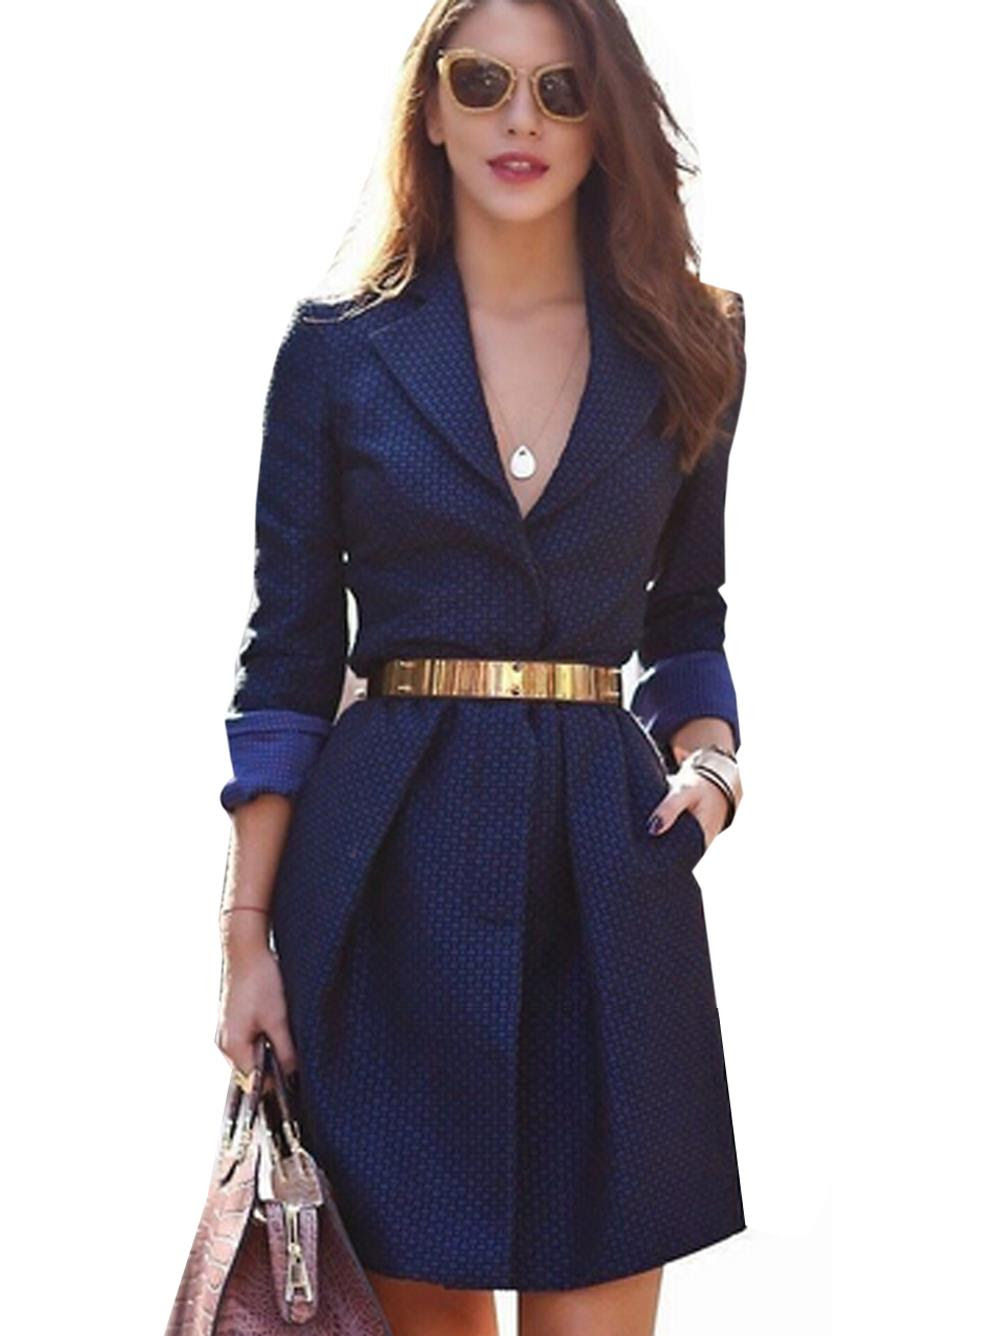 Womens Work Dresses Professional With Popular Trend In ...